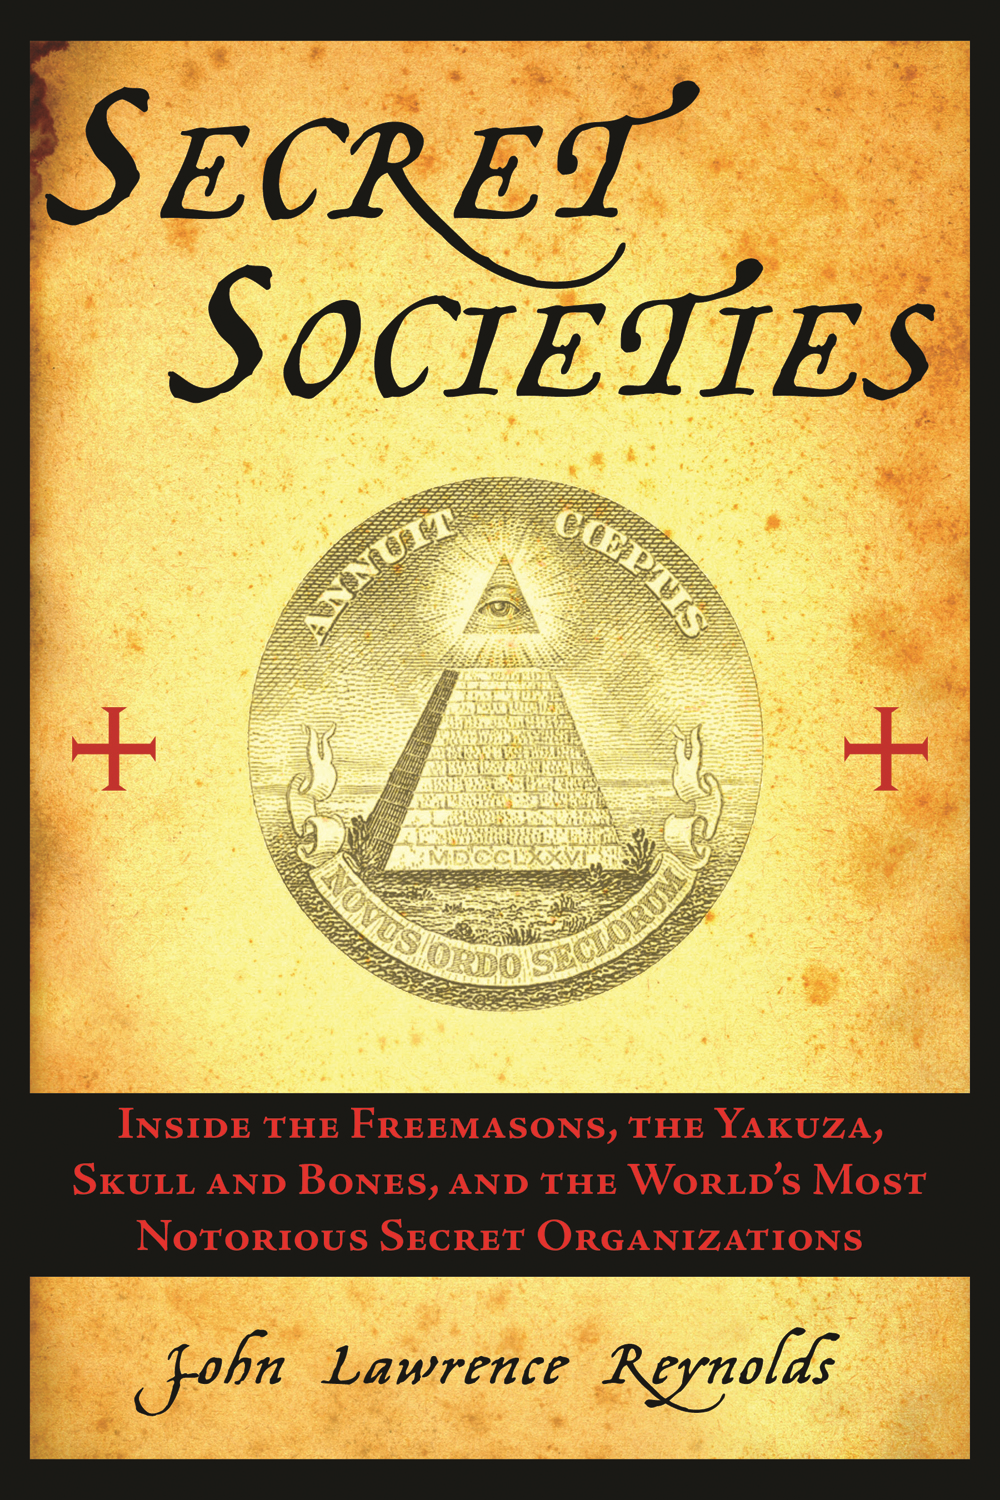 Secret Societies: Inside the Freemasons, the Yakuza, Skull and Bones, and the World's Most Notorious Secret Organizations By: John Lawrence Reynolds